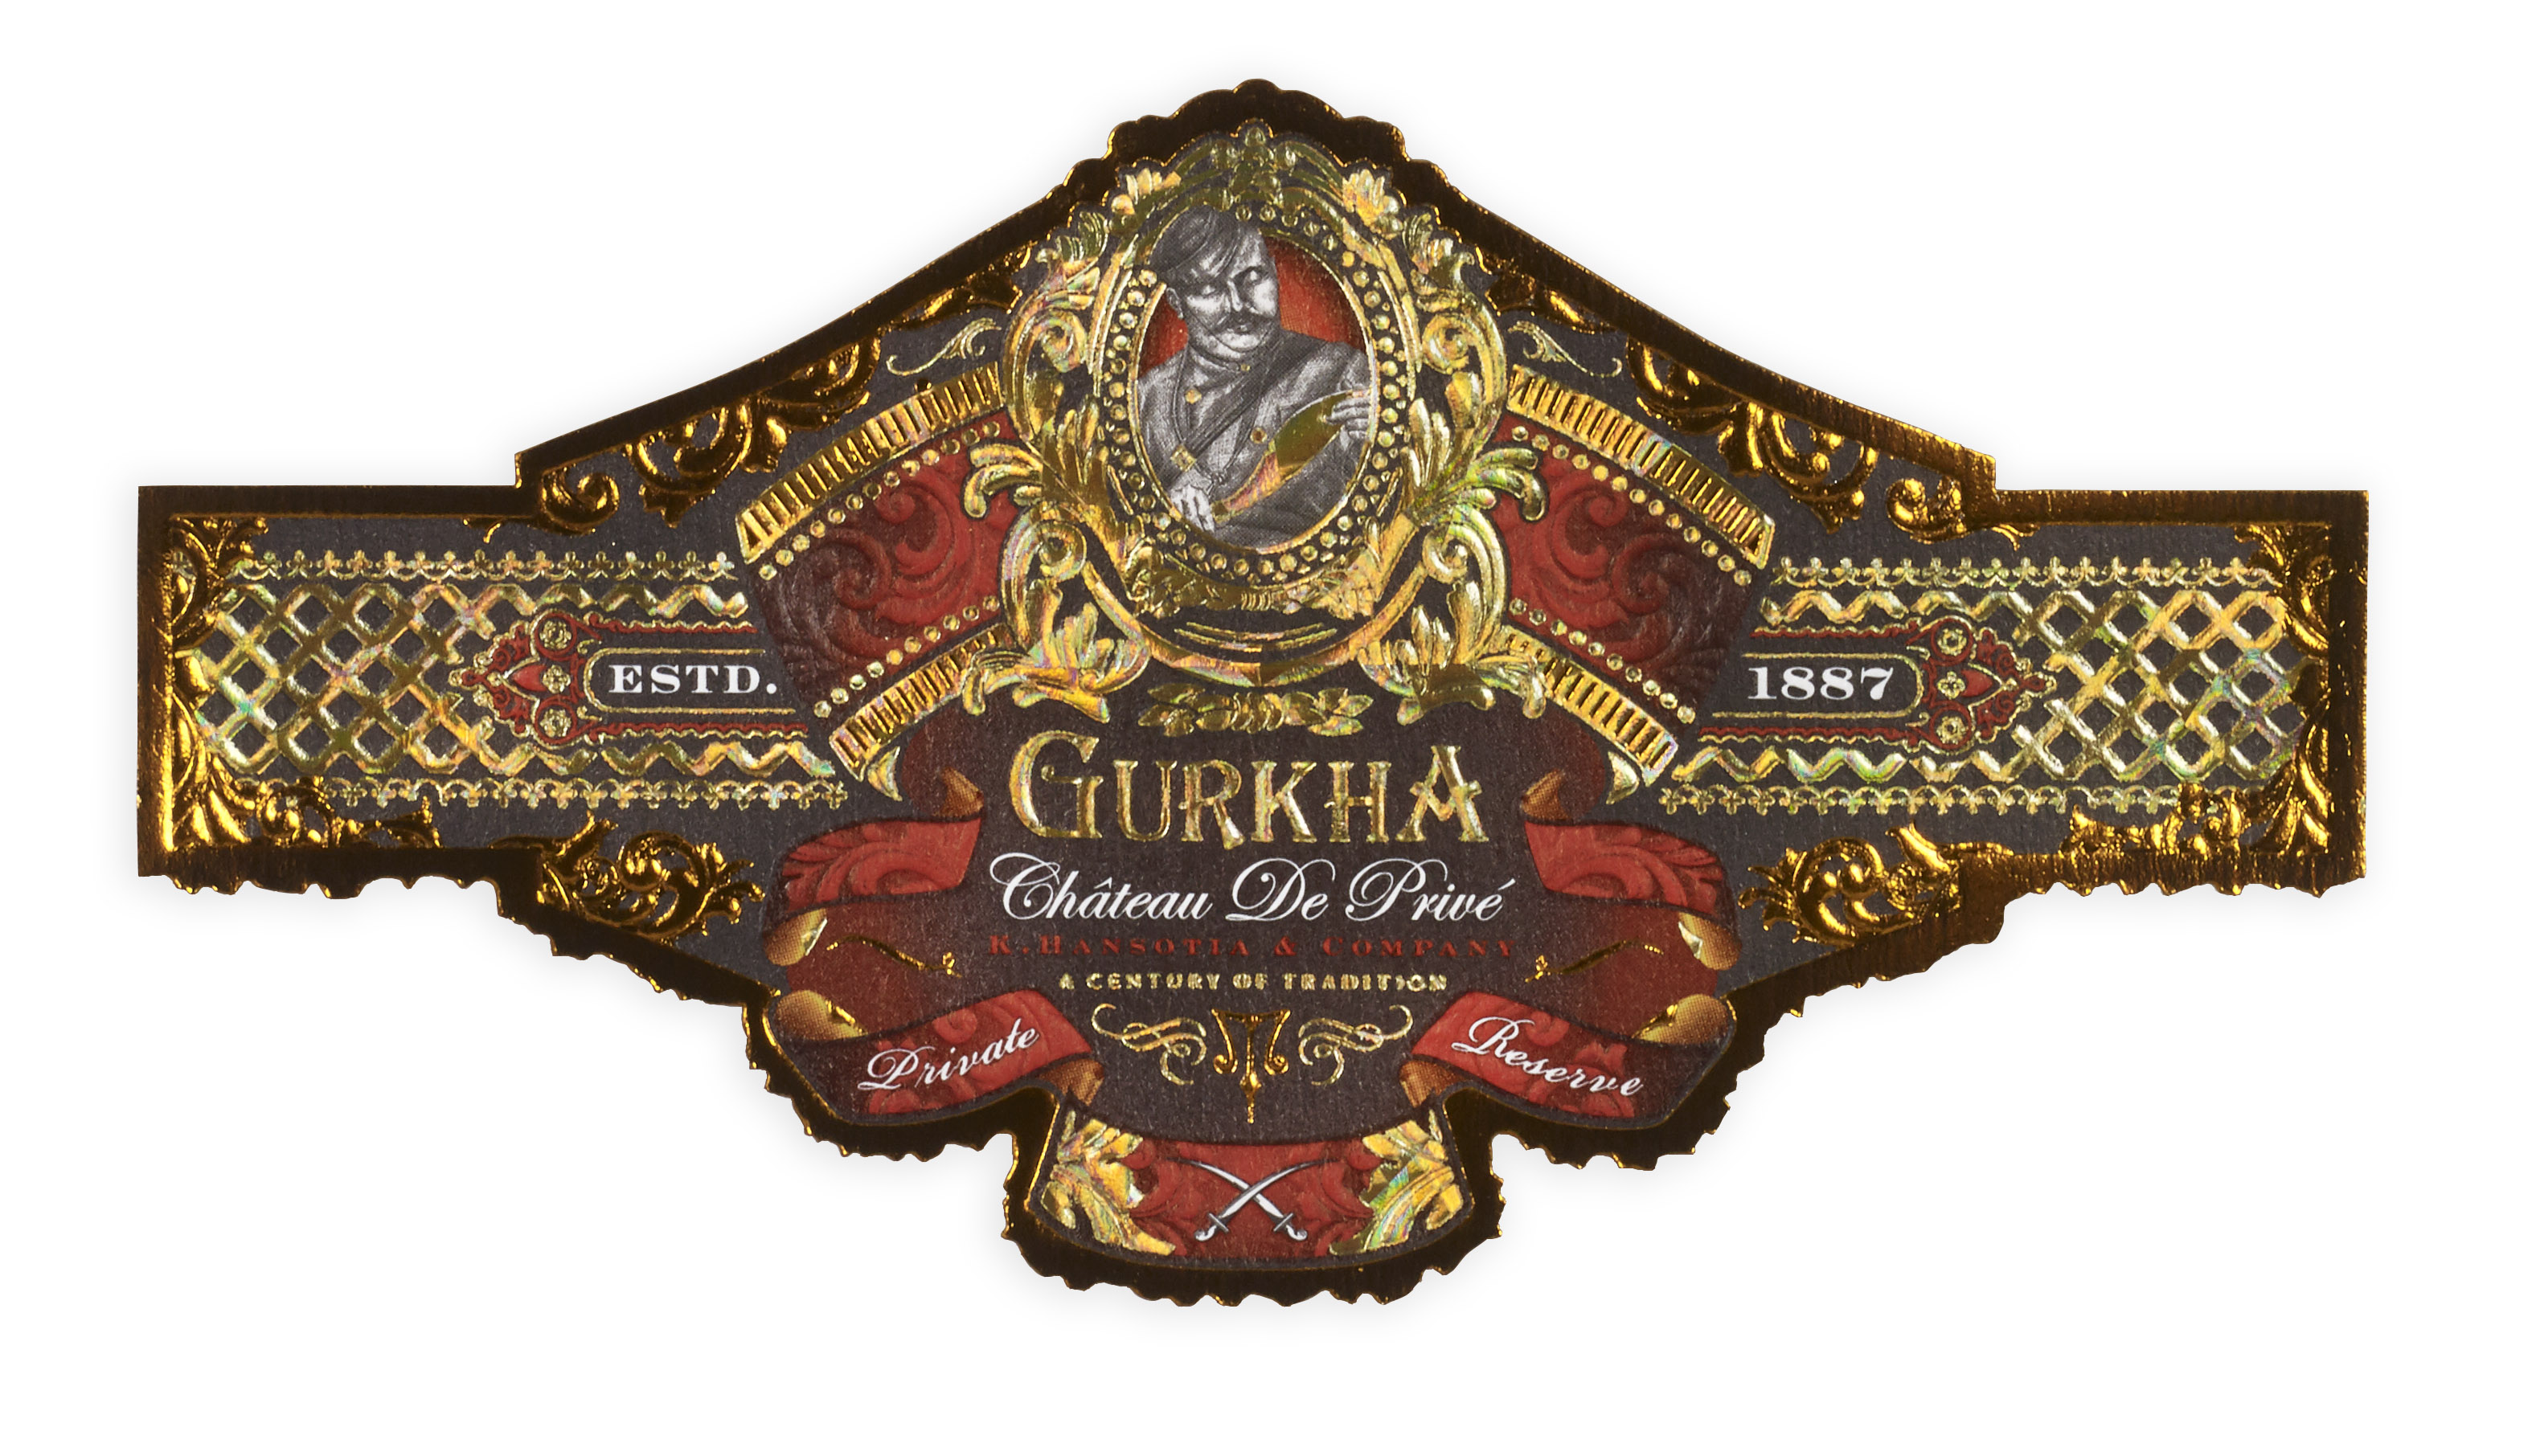 Cigar News: Gurkha Chateau de Prive to Launch at the 2018 IPCPR